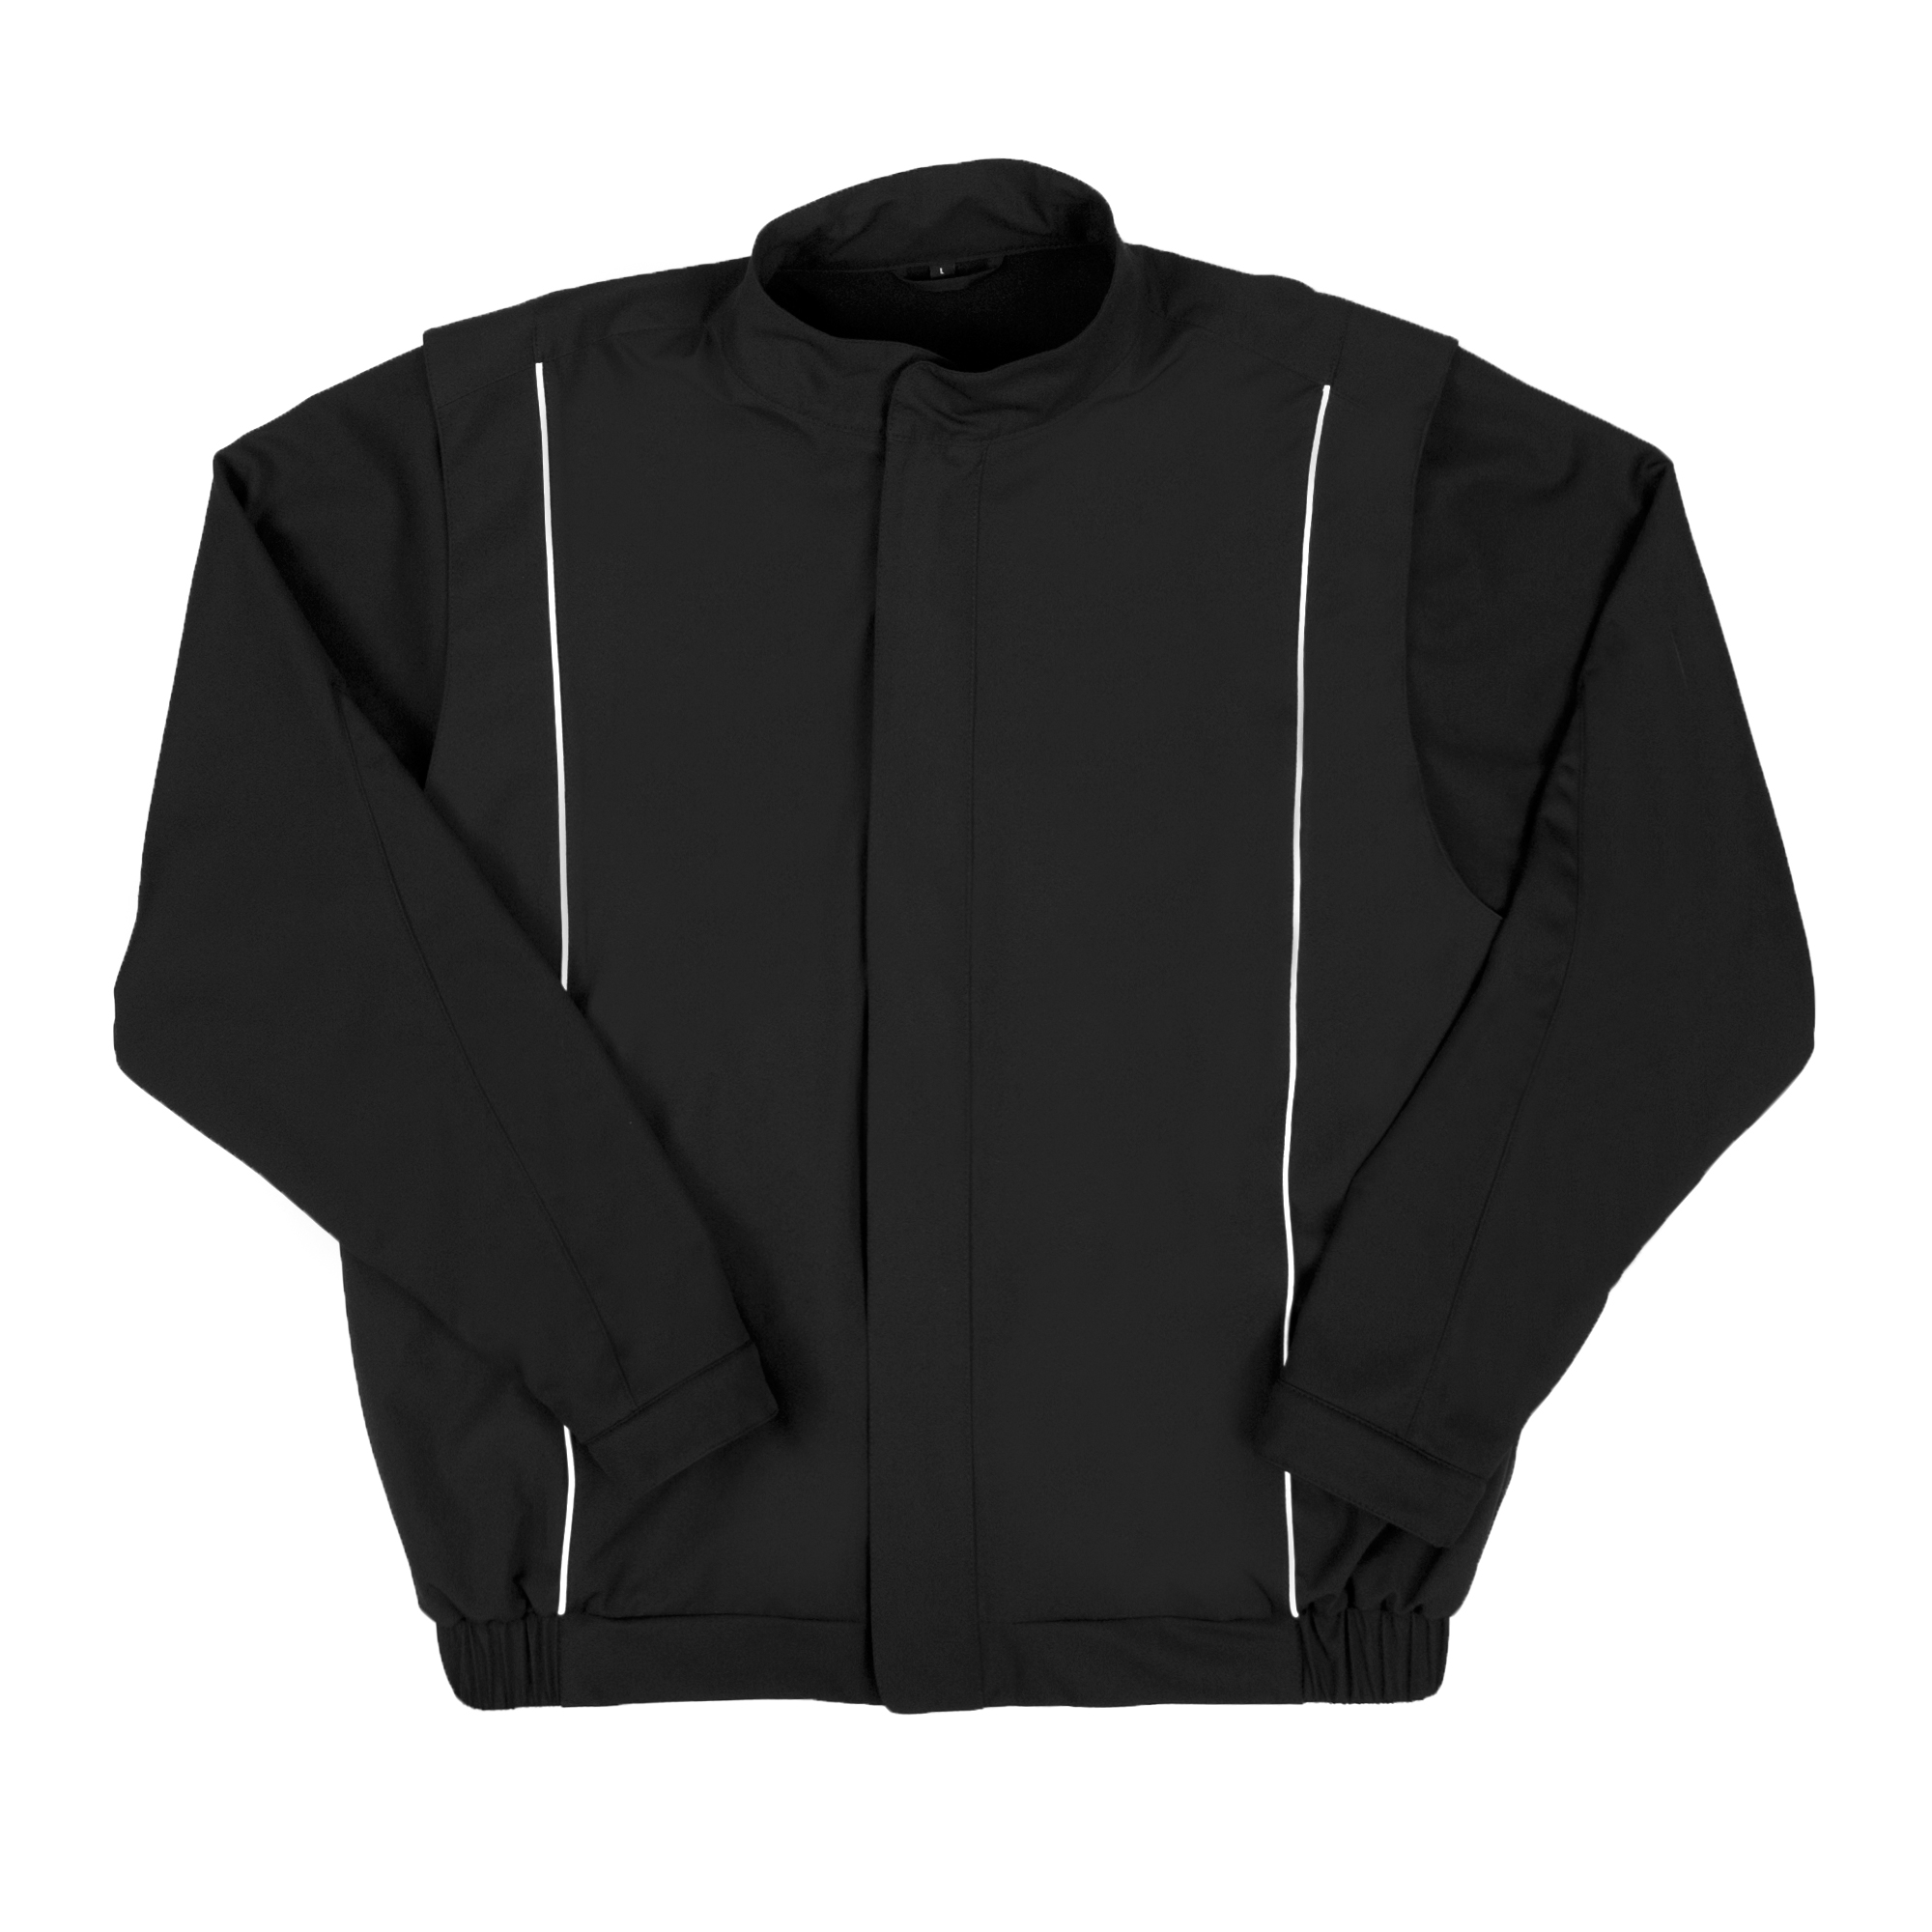 A Galway Bay Apparel jacket